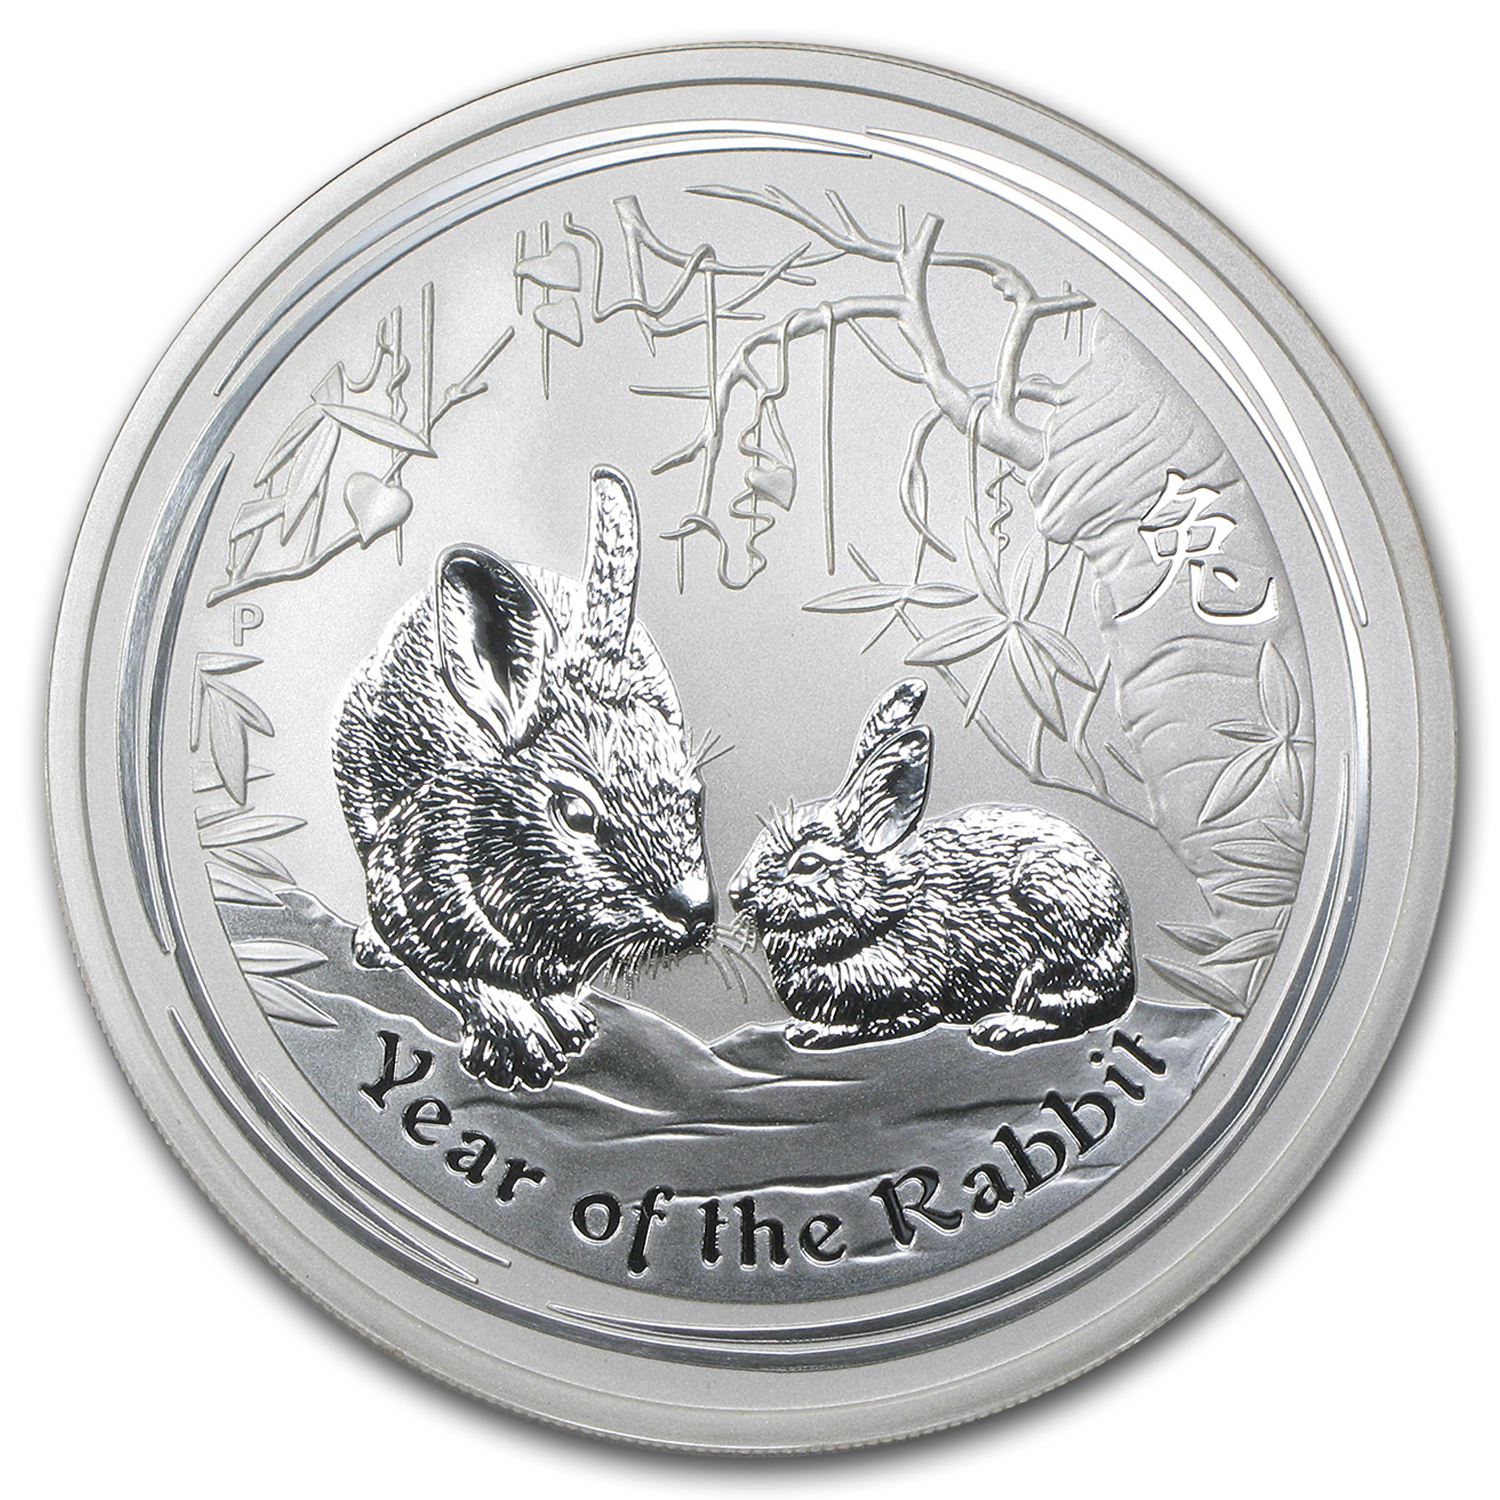 2011 Australia 5 oz Silver Year of the Rabbit BU